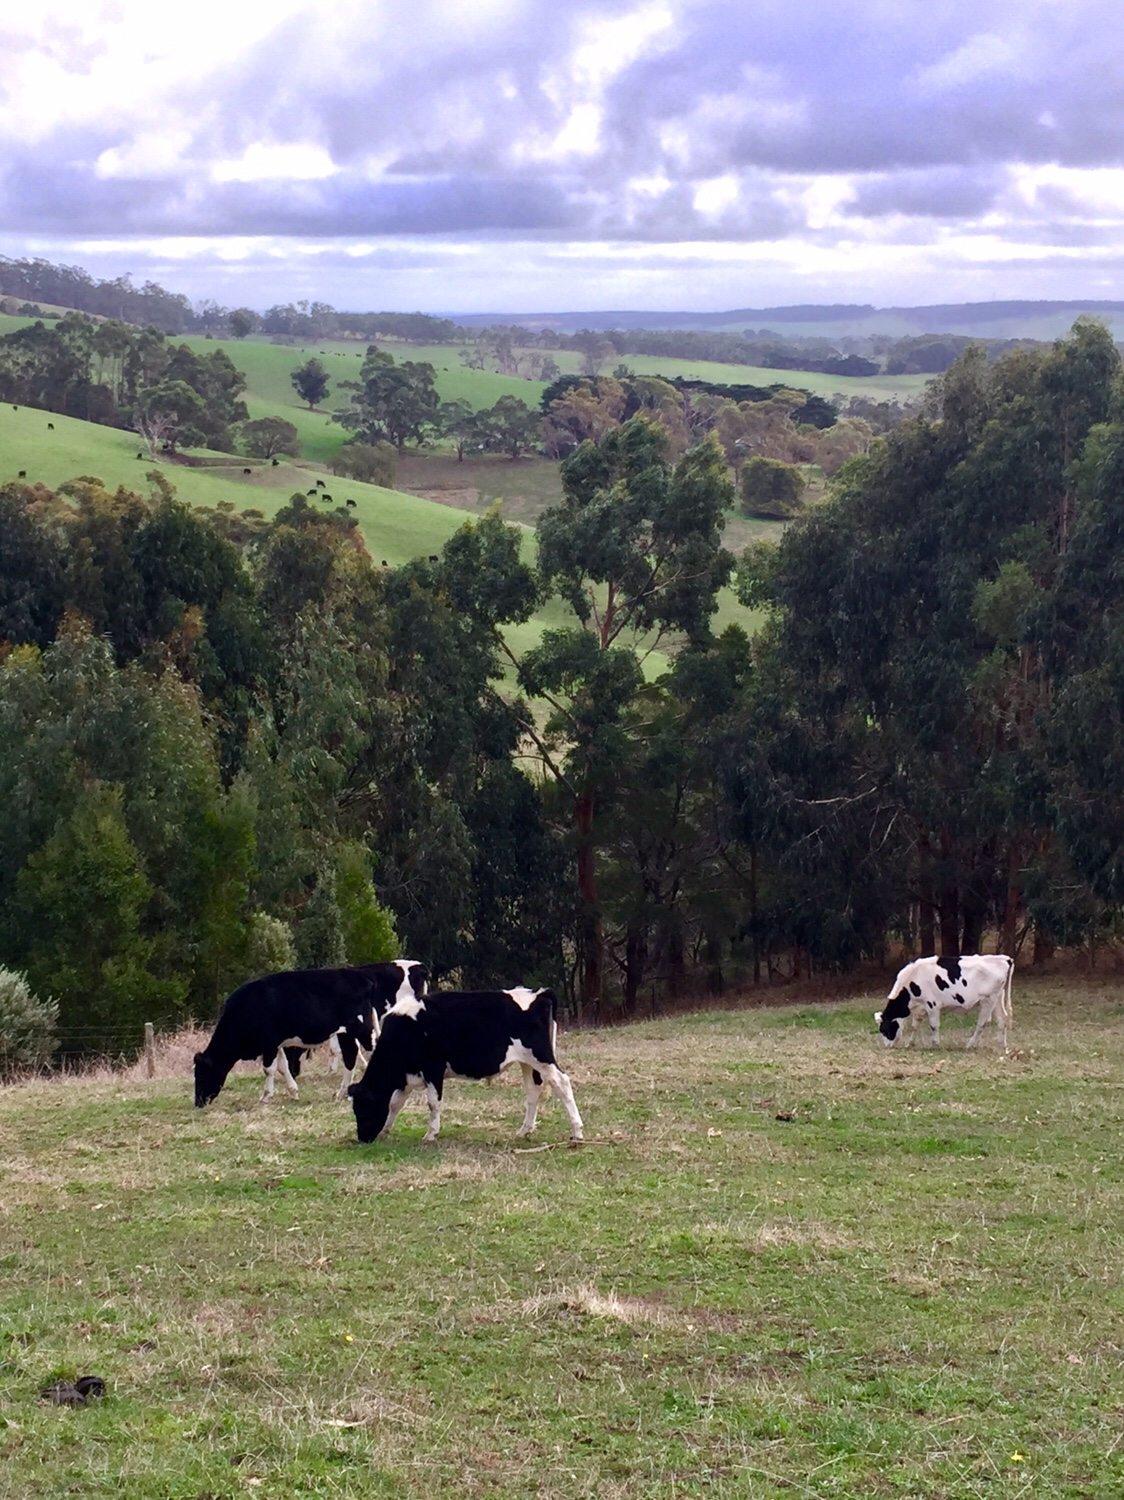 Steers grazing in our paddock